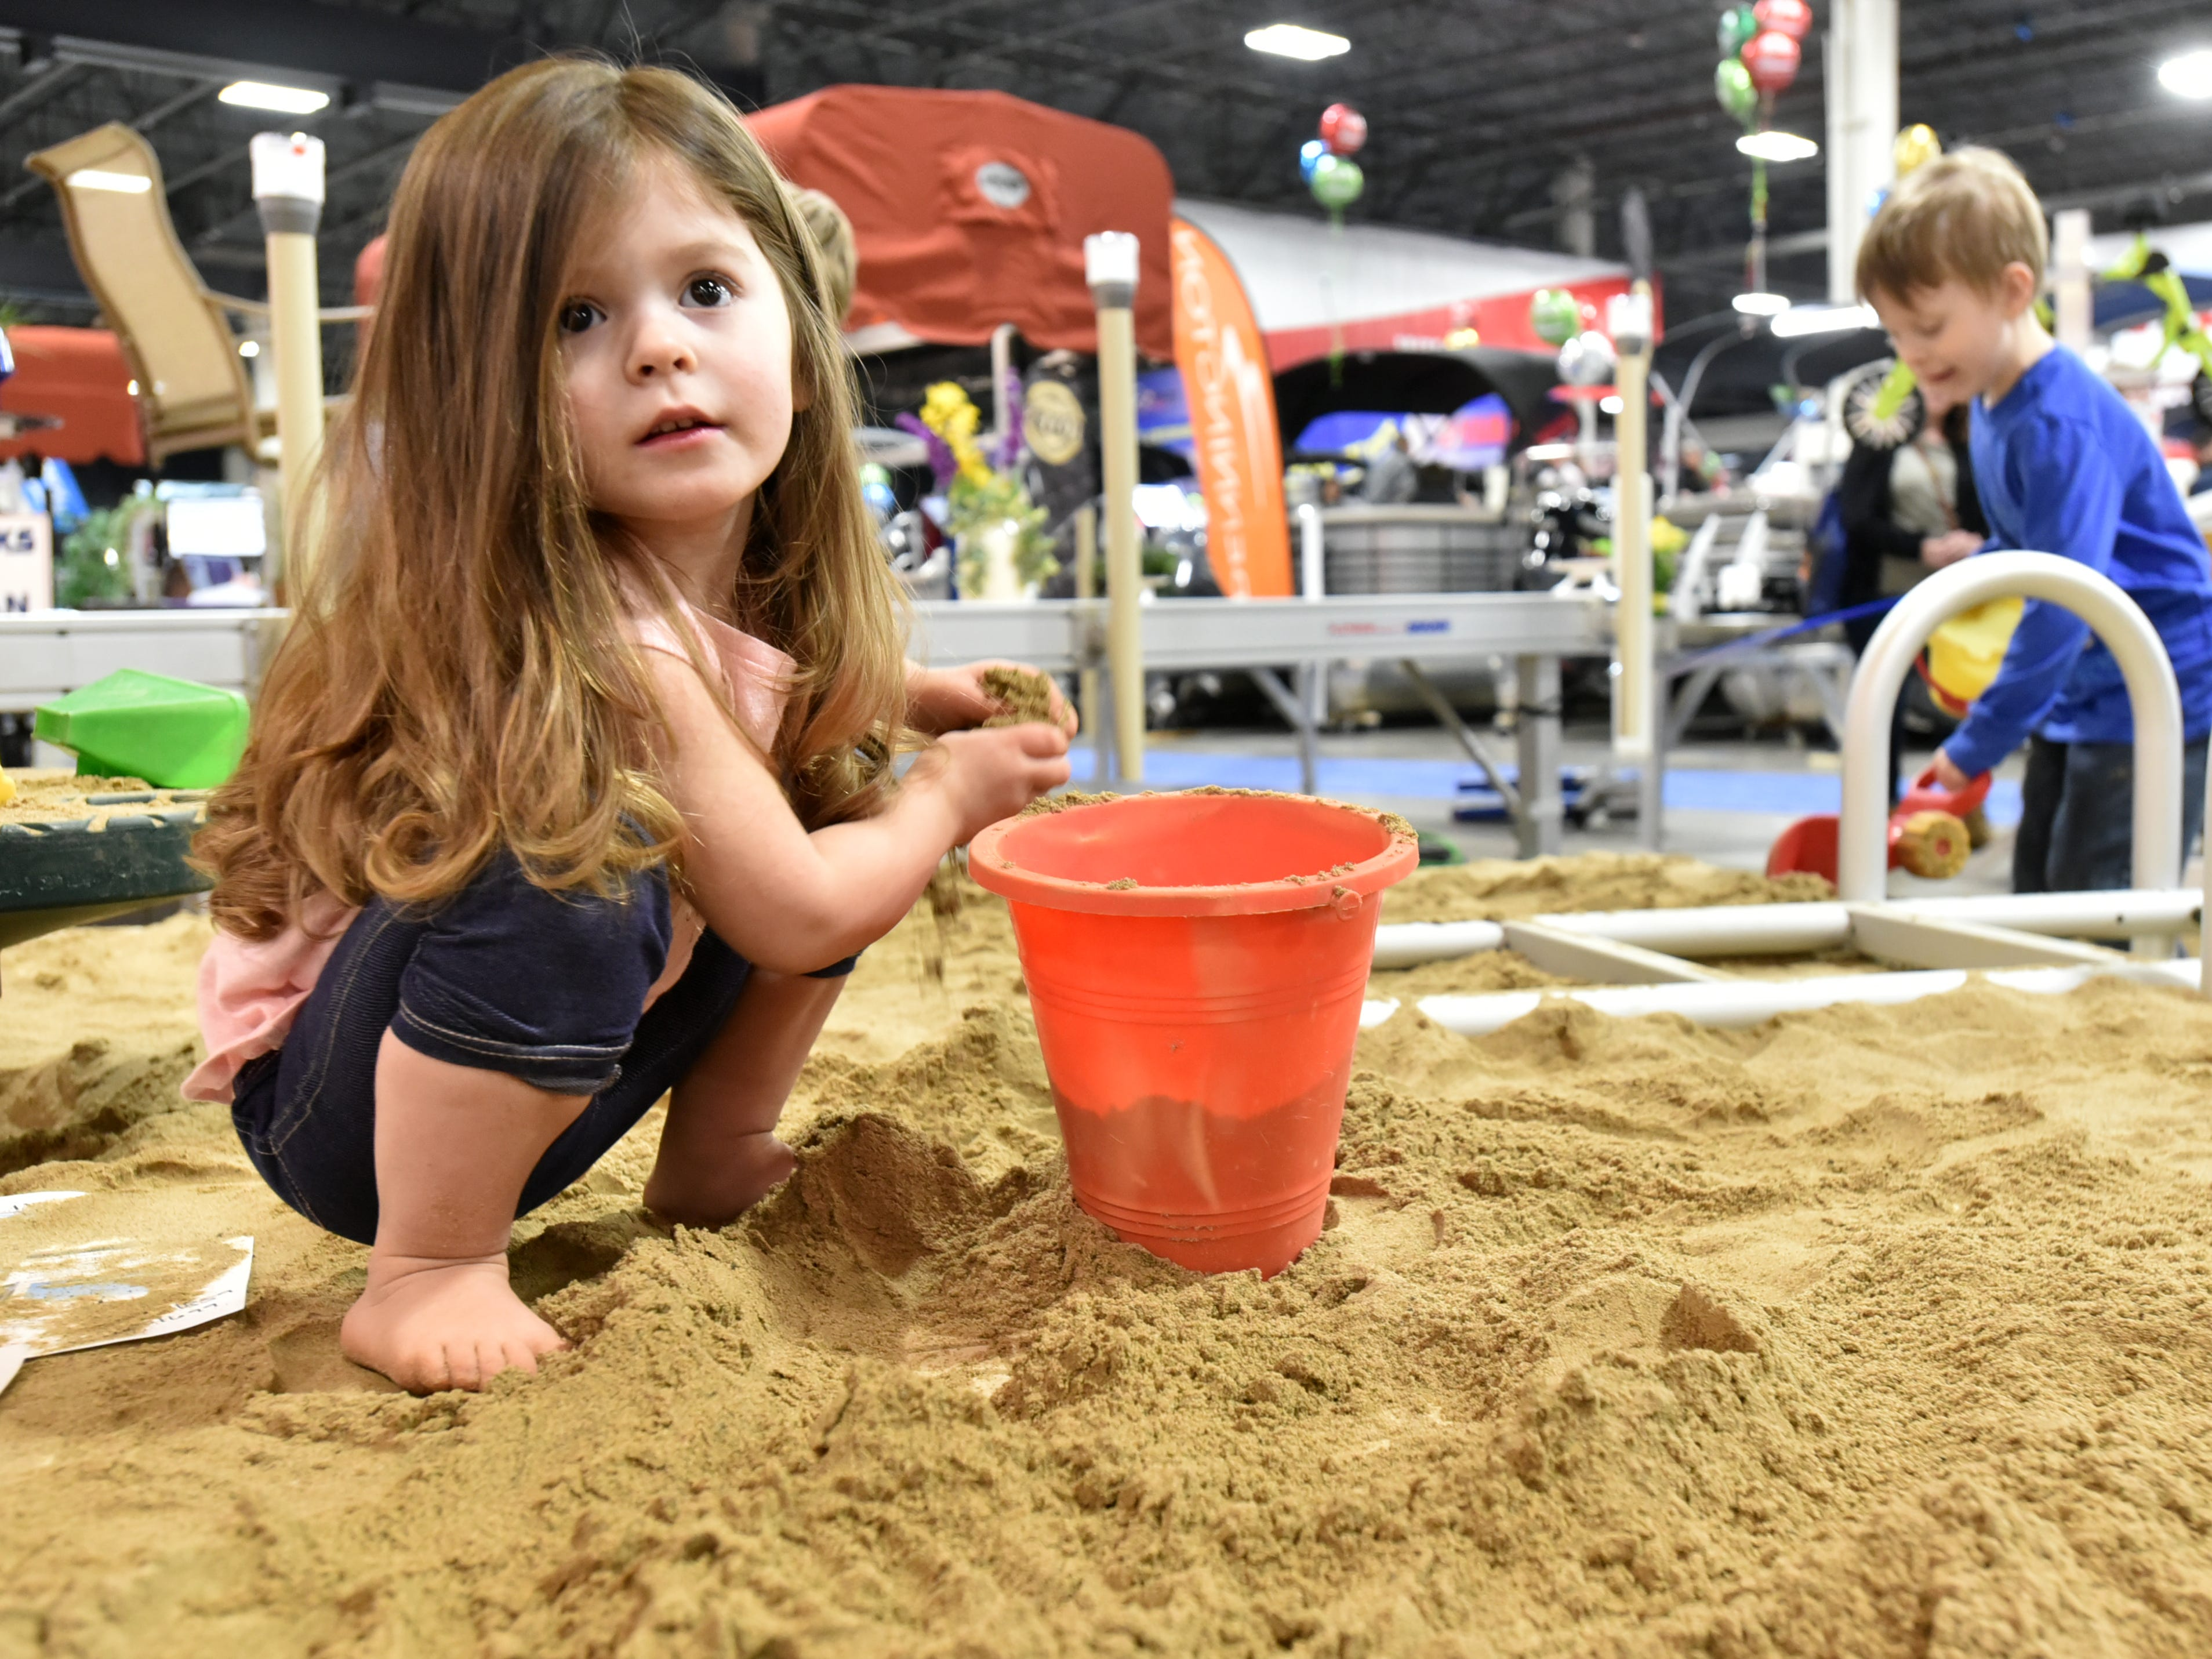 Avery Thom, of St. Clair Shores, plays in a giant sand box at the recently-concluded Outdoorama at Novi's Suburban Collection Showplace. The Outdoorama was combined with a show on cabin and up north living and had lots of exhibits on the outdoors and activities for the visitor to check out.